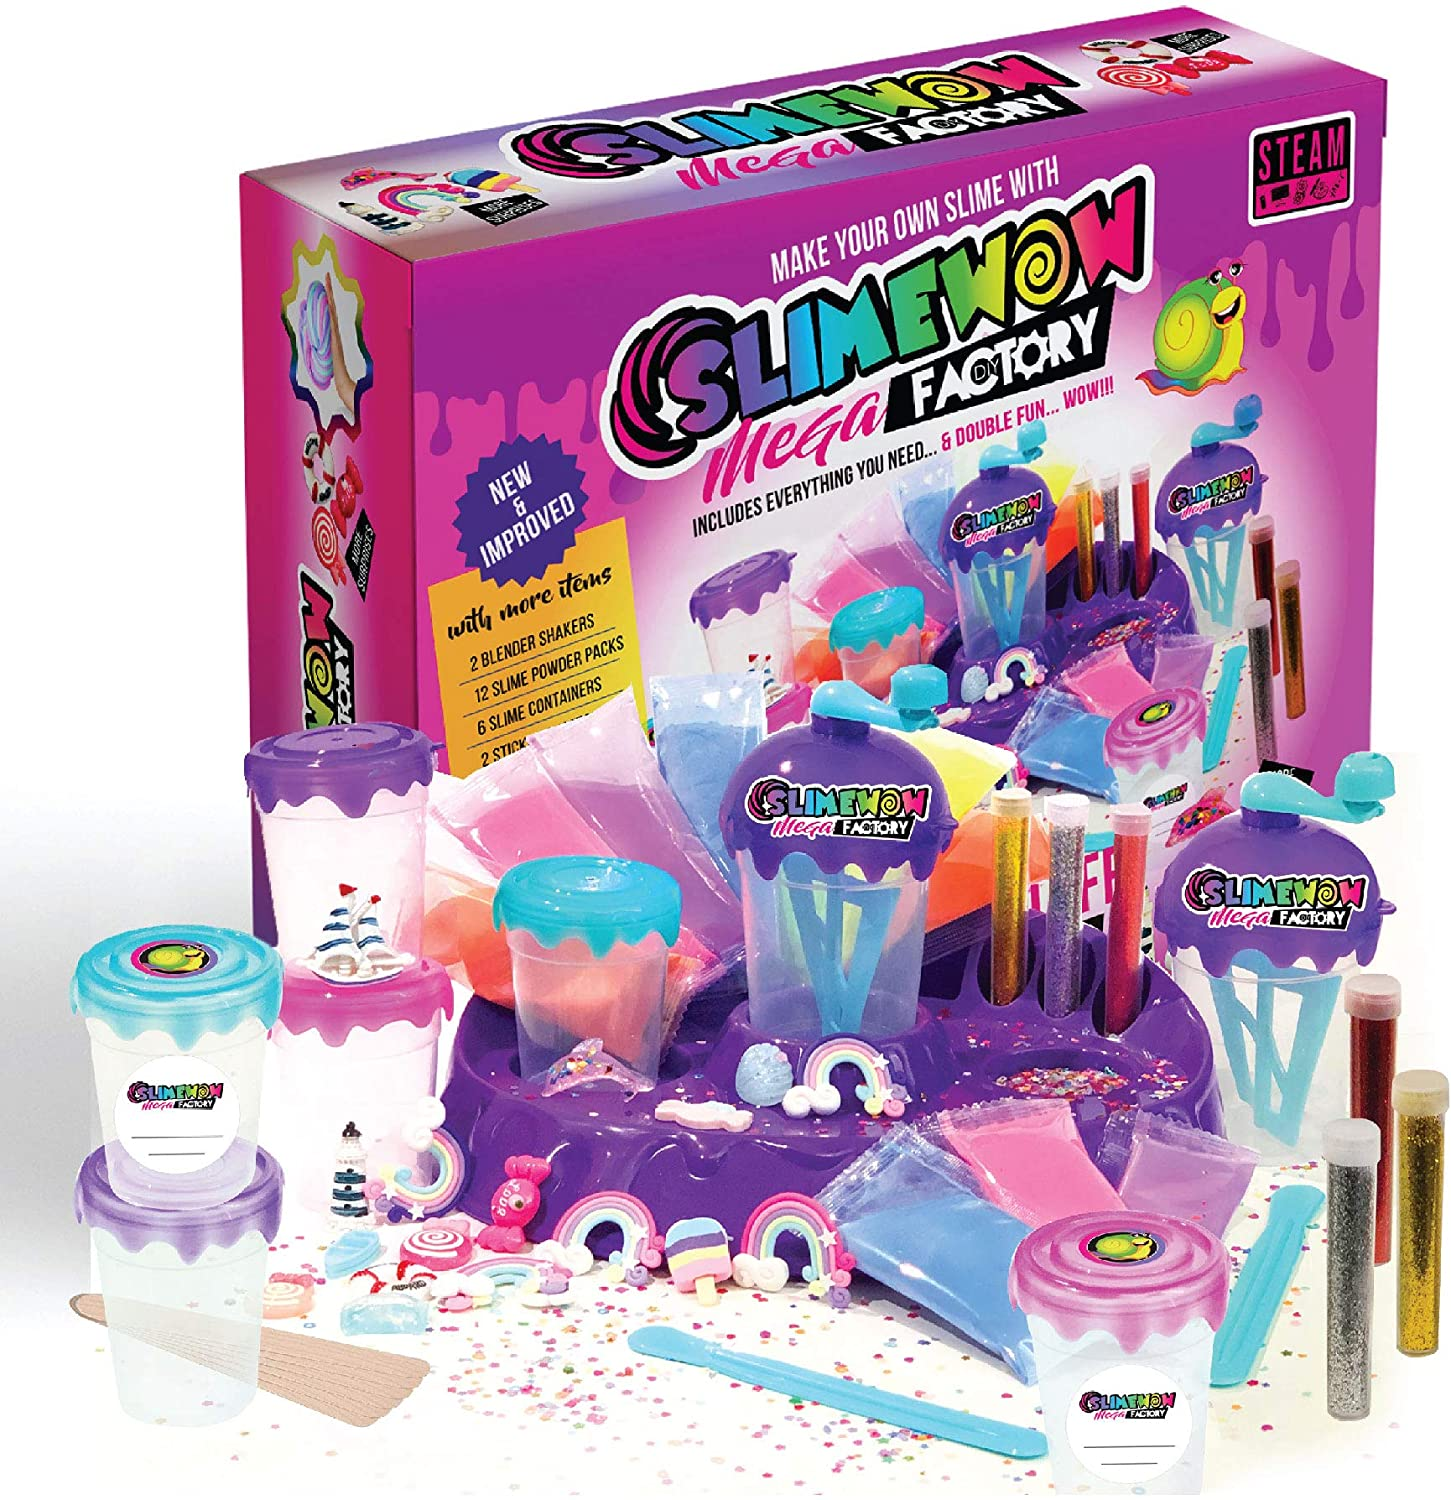 Slime Kit for Girls | Unicorn DIY Making Fluffy Slime Complete Supplies KIT | Including POOPSIE Surprises and Slime CONTAINERS | Art and Crafts at Home and Party Fun| Hottest Gift